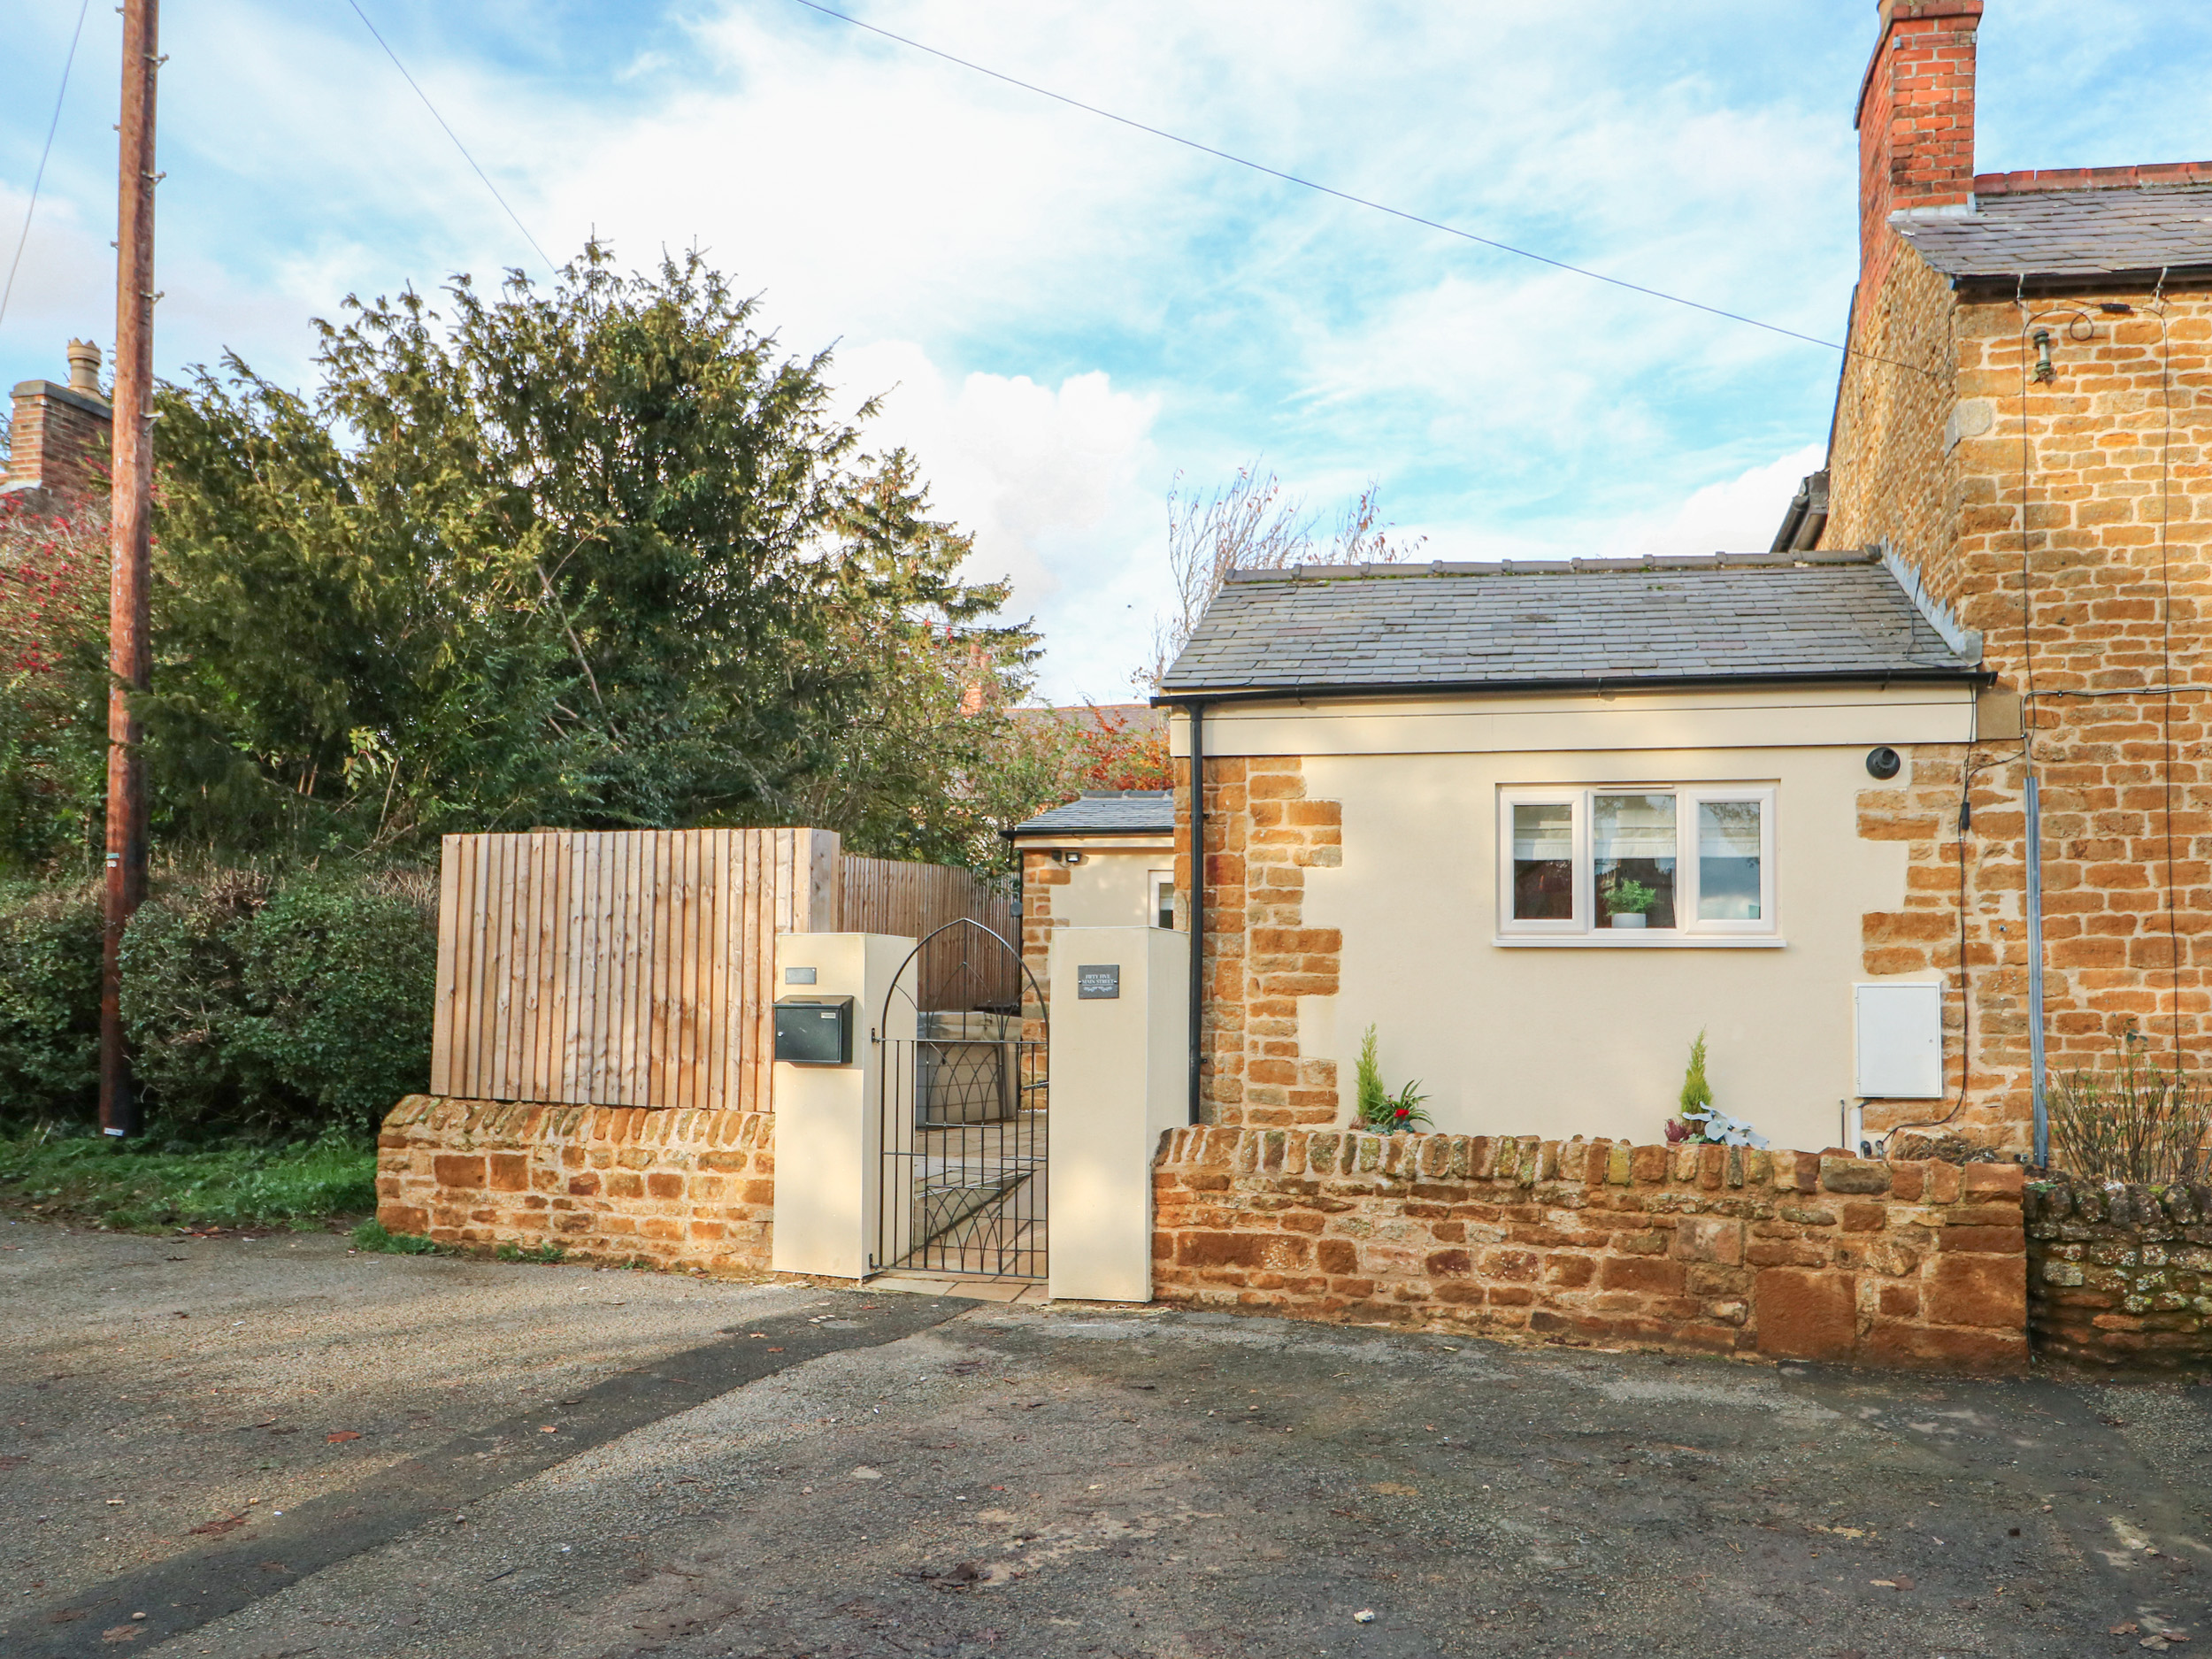 2 bedroom Cottage for rent in Melton Mowbray